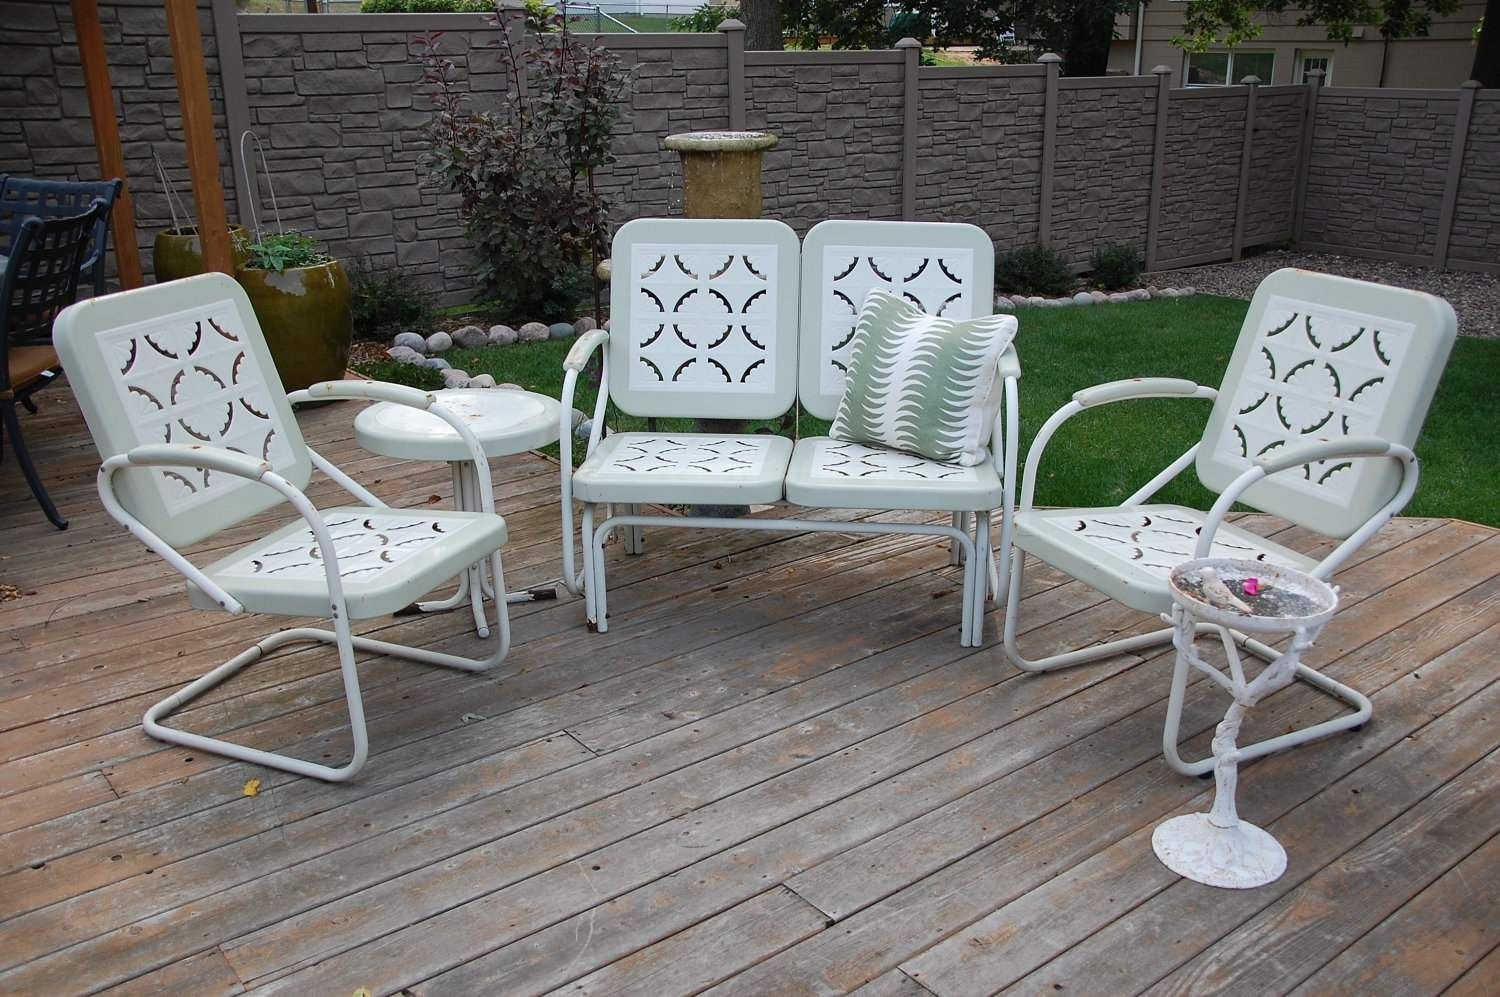 Vintage Metal Lawn Chairs Set : Fresh Painted Vintage .